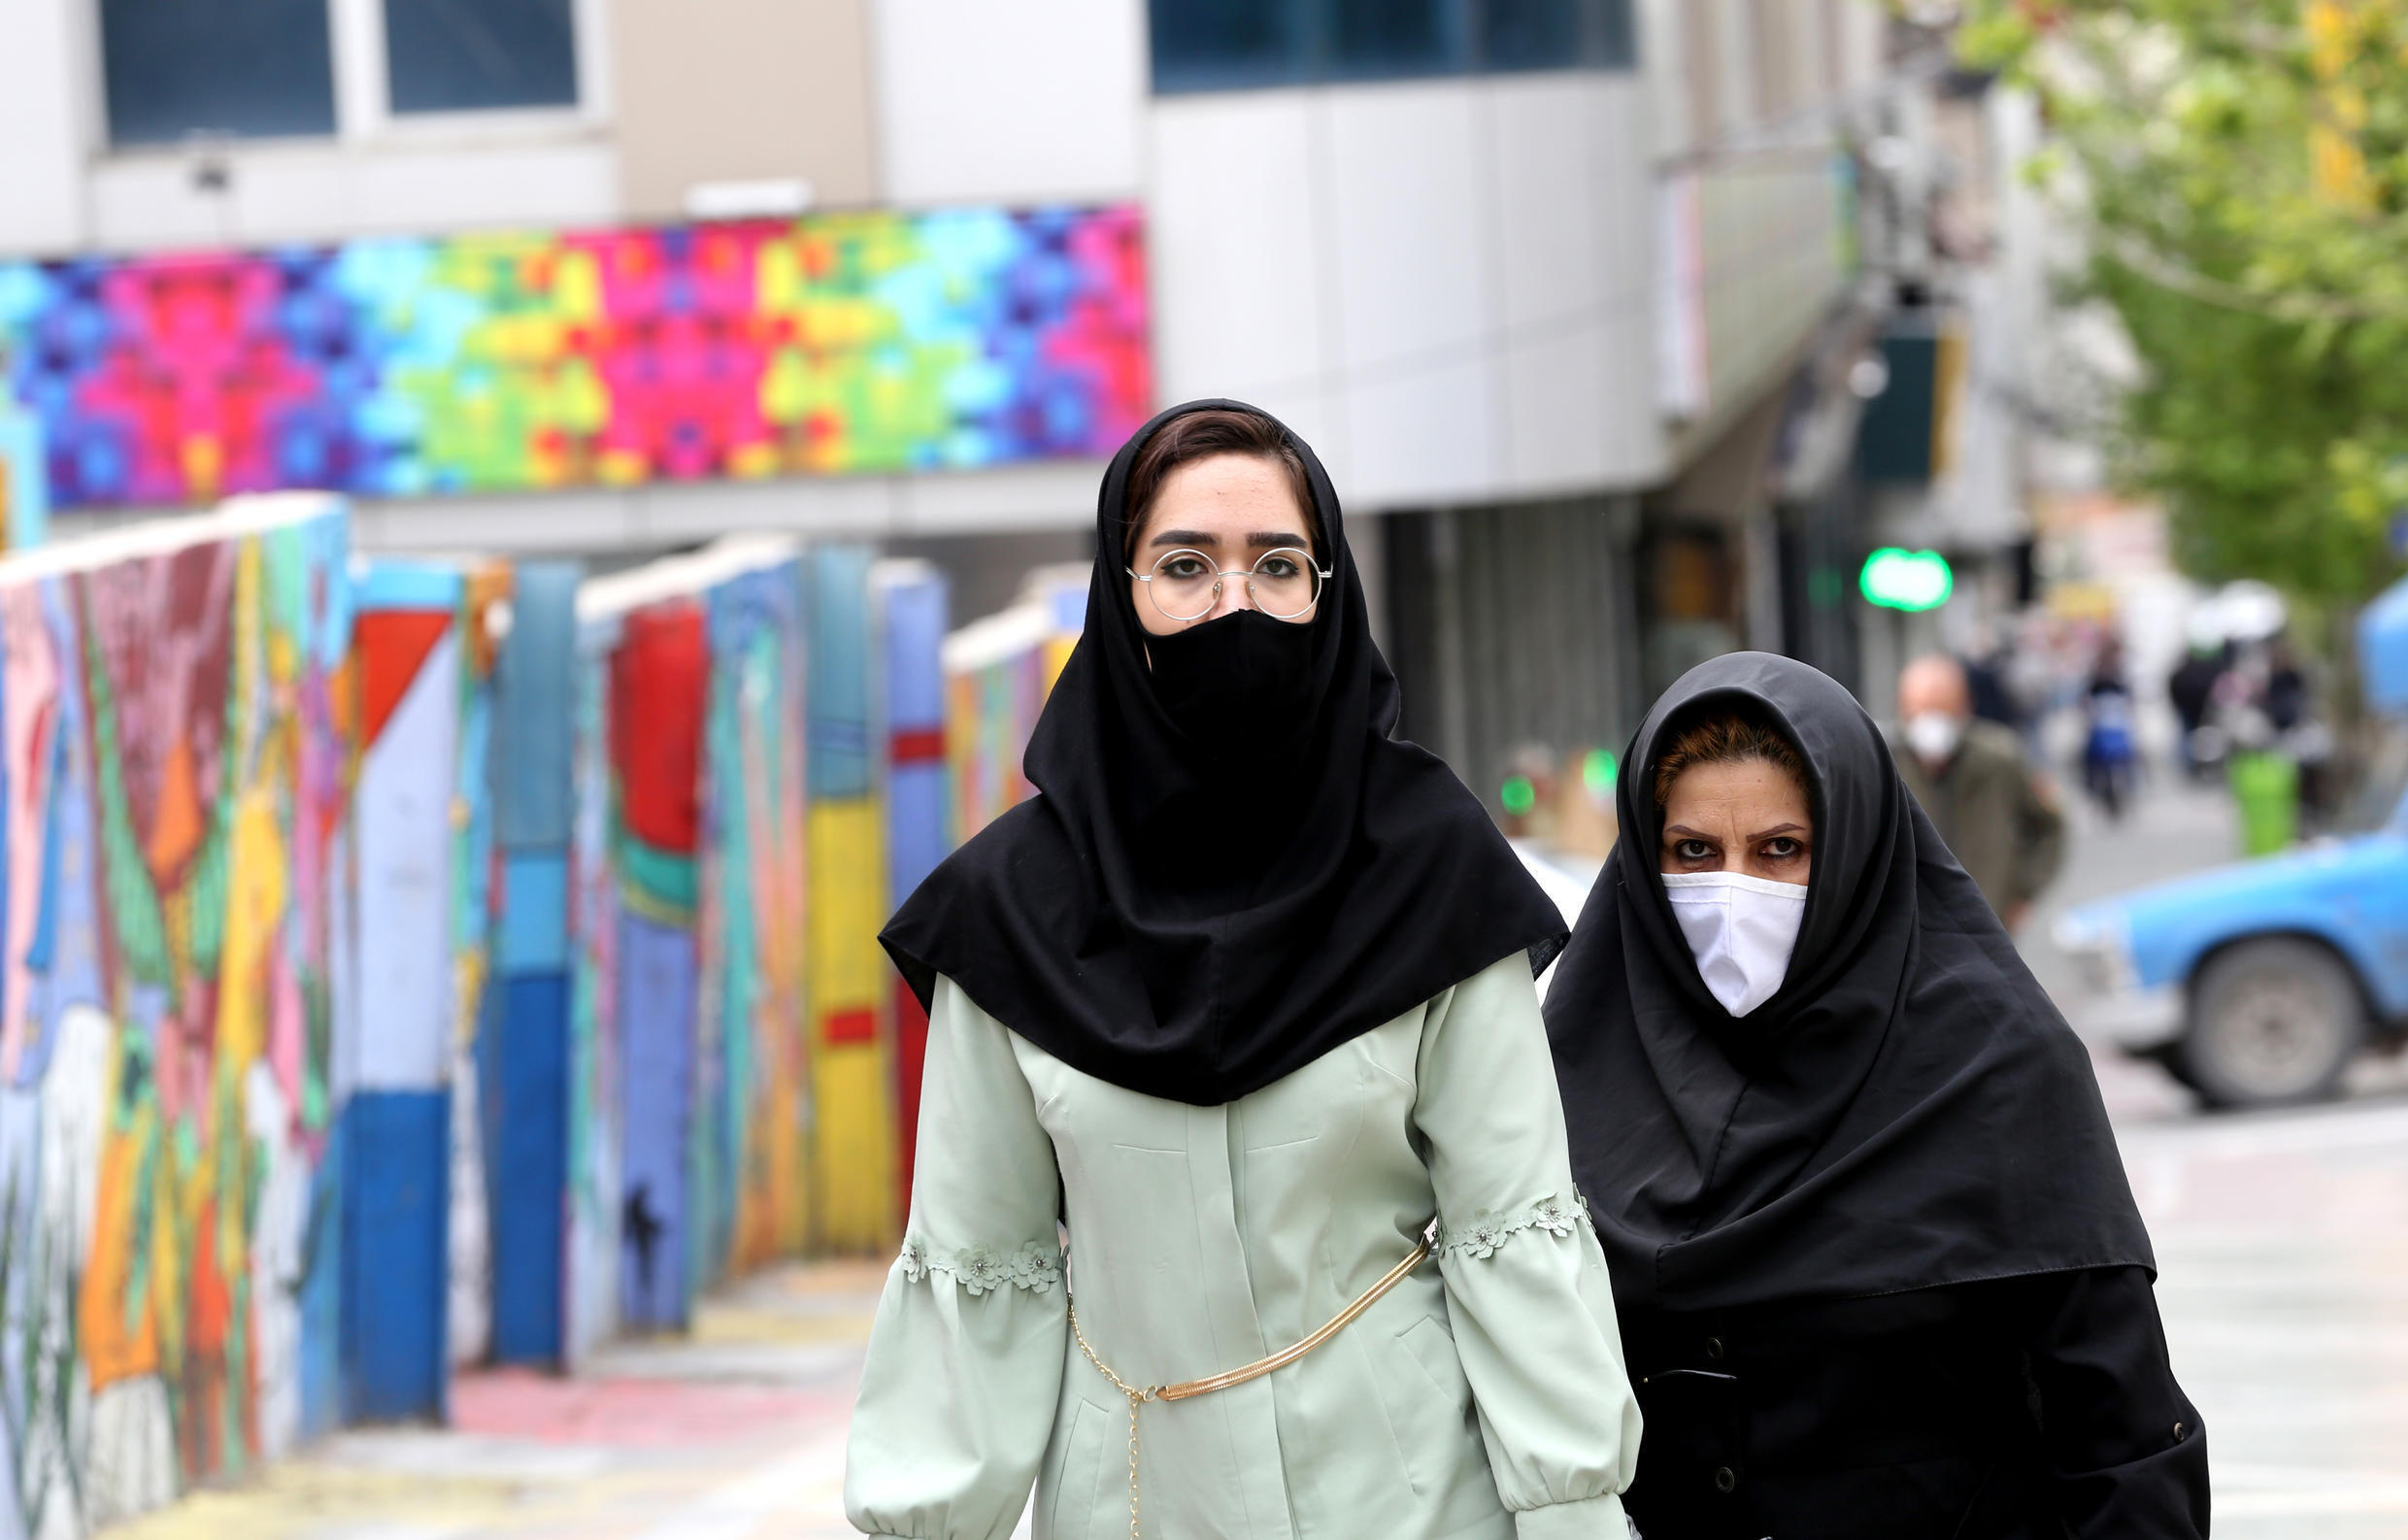 Iranian officials have argued the economy must start reopening if it is to survive diminishing oil and tax revenues coupled with US sanctions.